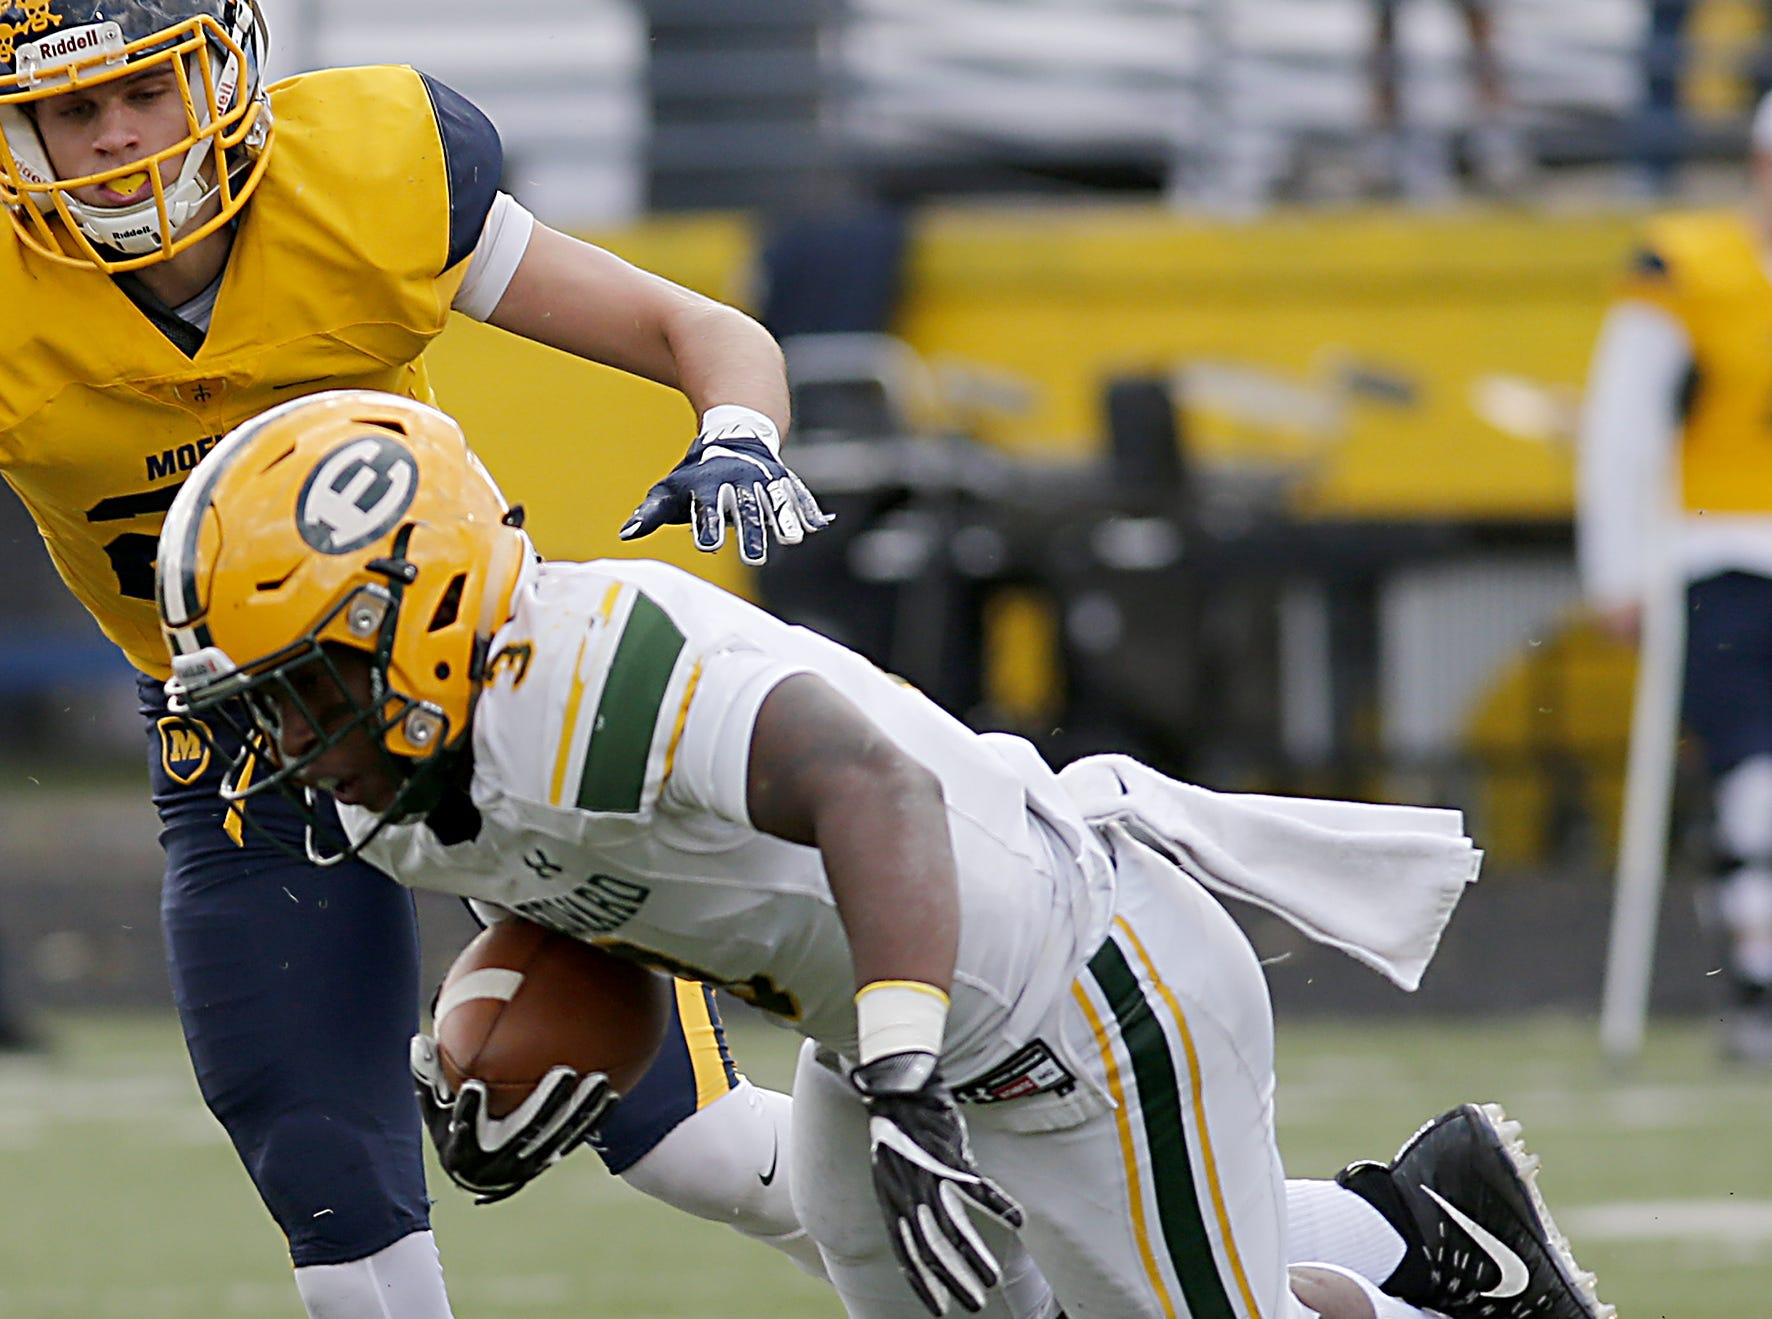 Lakewood St. Edward running back Jordan Castleberry is tripped up by Moeller defensive back Carrington Valentine during their game at Lockland Saturday, Oct. 20, 2018.